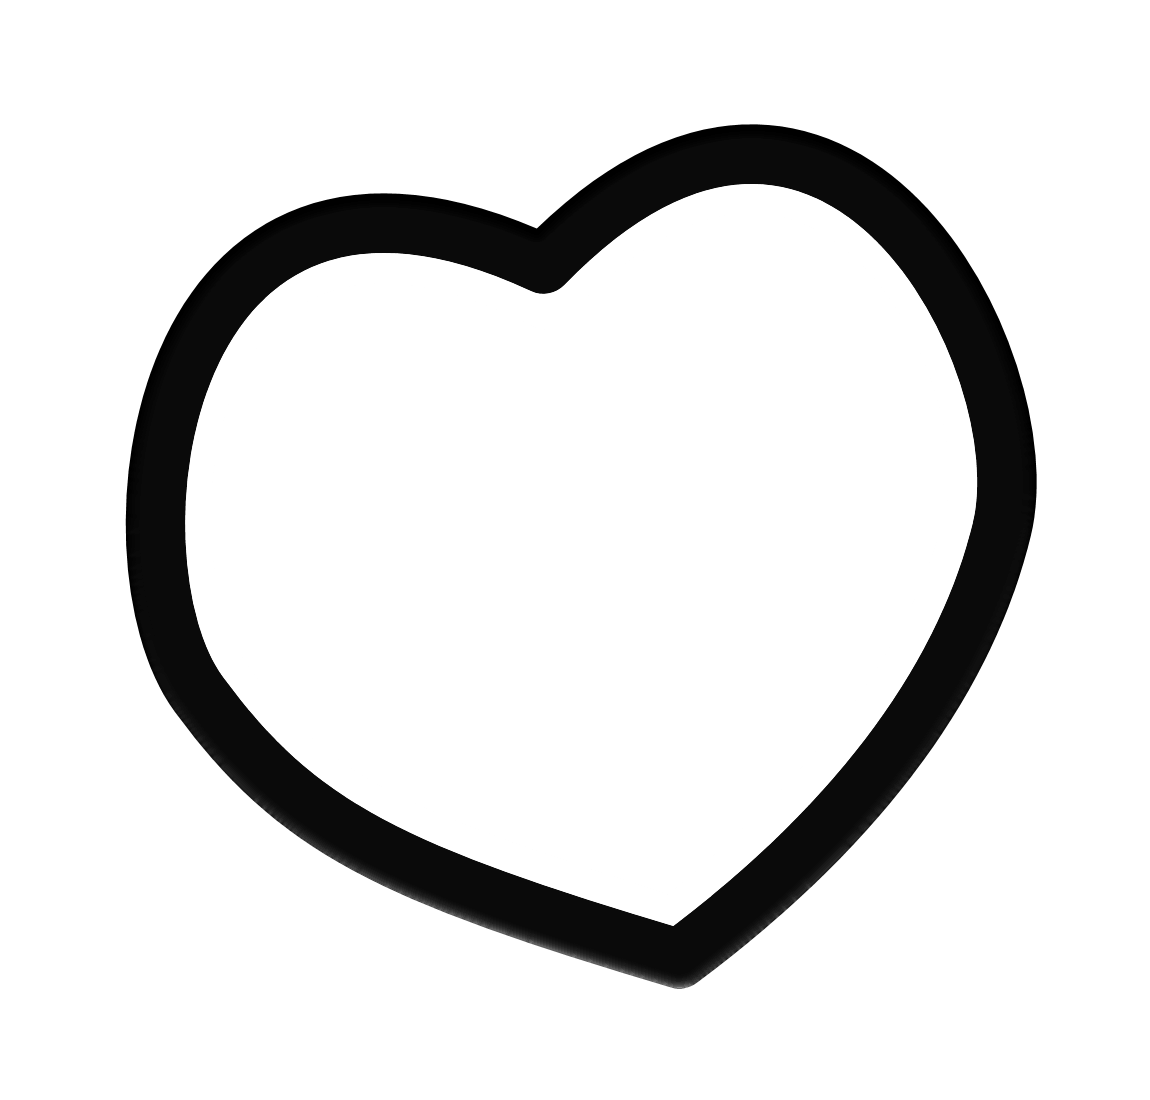 hight resolution of 1150x1100 heart clipart solid black